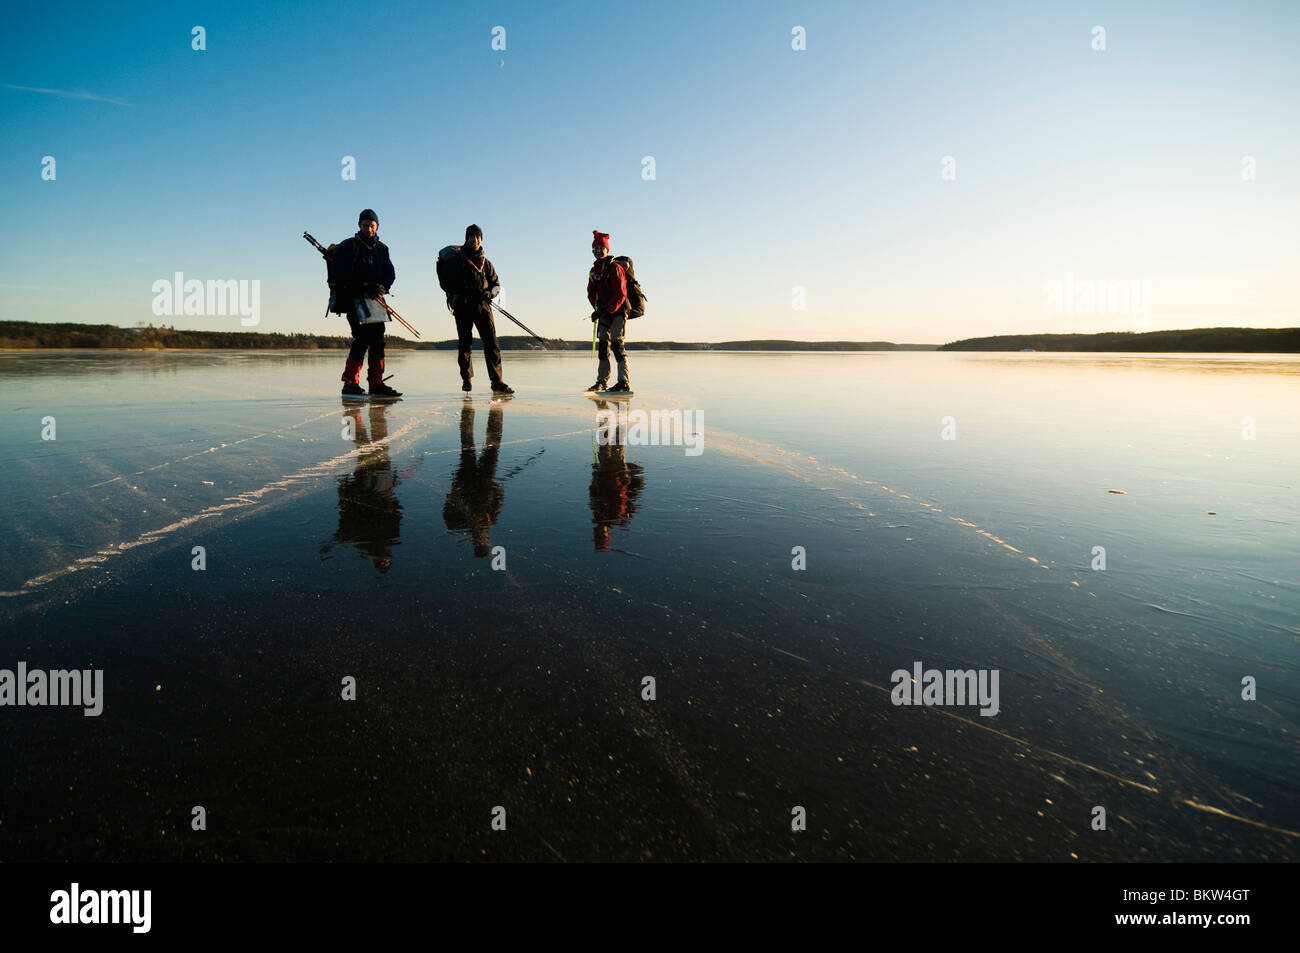 Three long-distance skaters standing on ice - Stock Image